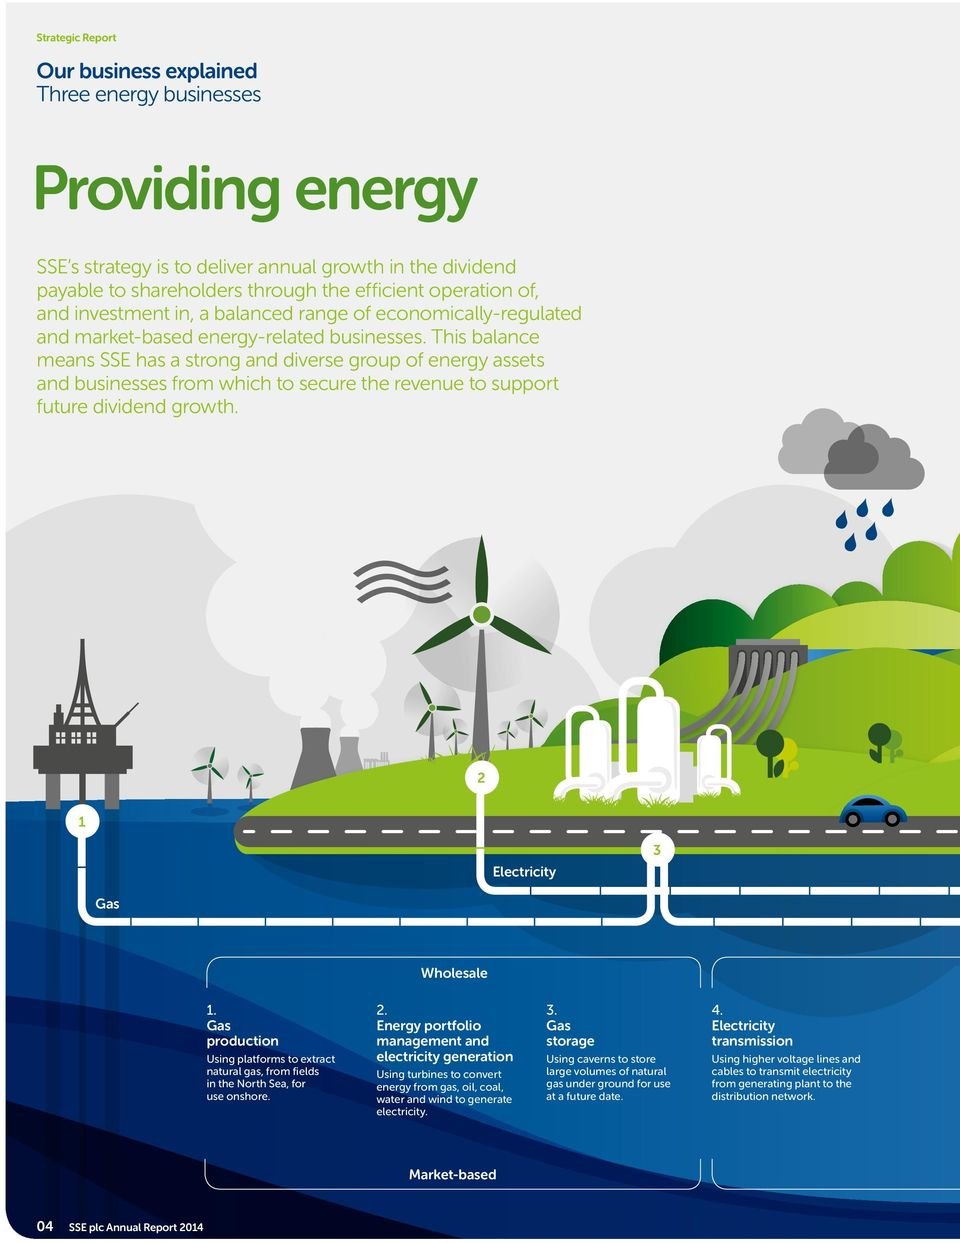 This balance means SSE has a strong and diverse group of energy assets and businesses from which to secure the revenue to support future dividend growth. 2 1 Electricity 3 Gas Wholesale 1.